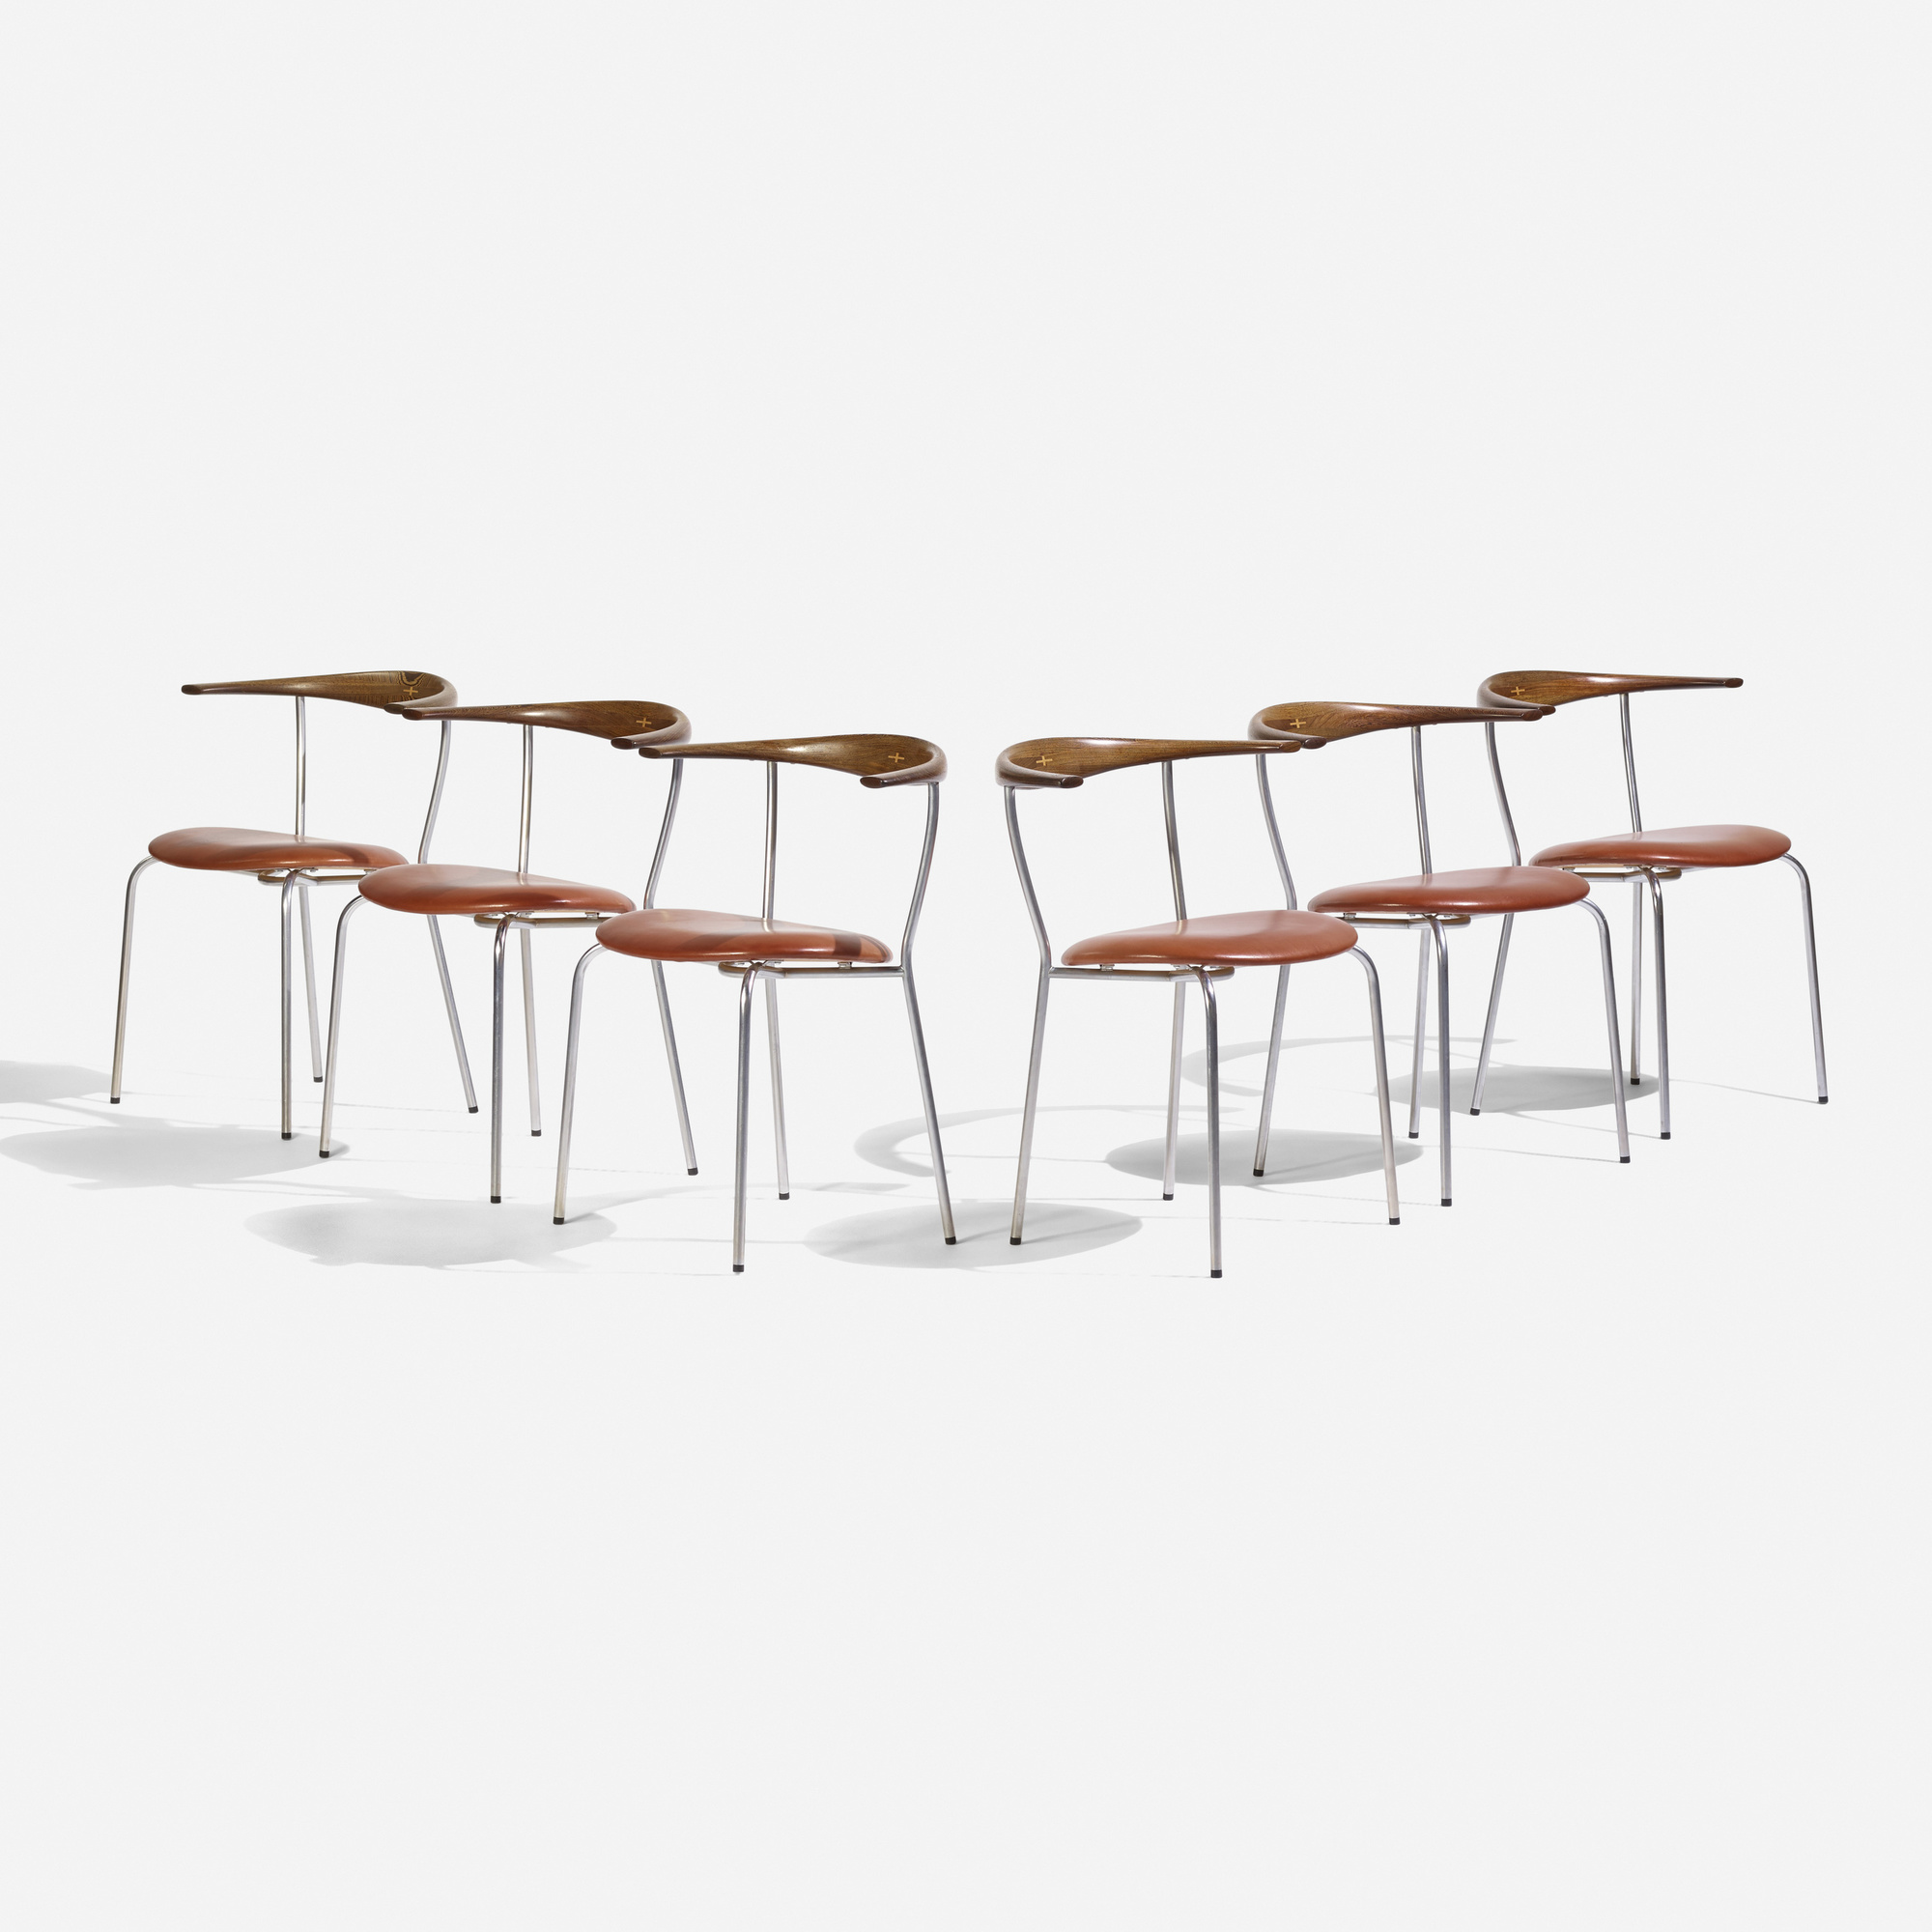 149: Hans J. Wegner / dining chairs model JH701, set of six (1 of 4)